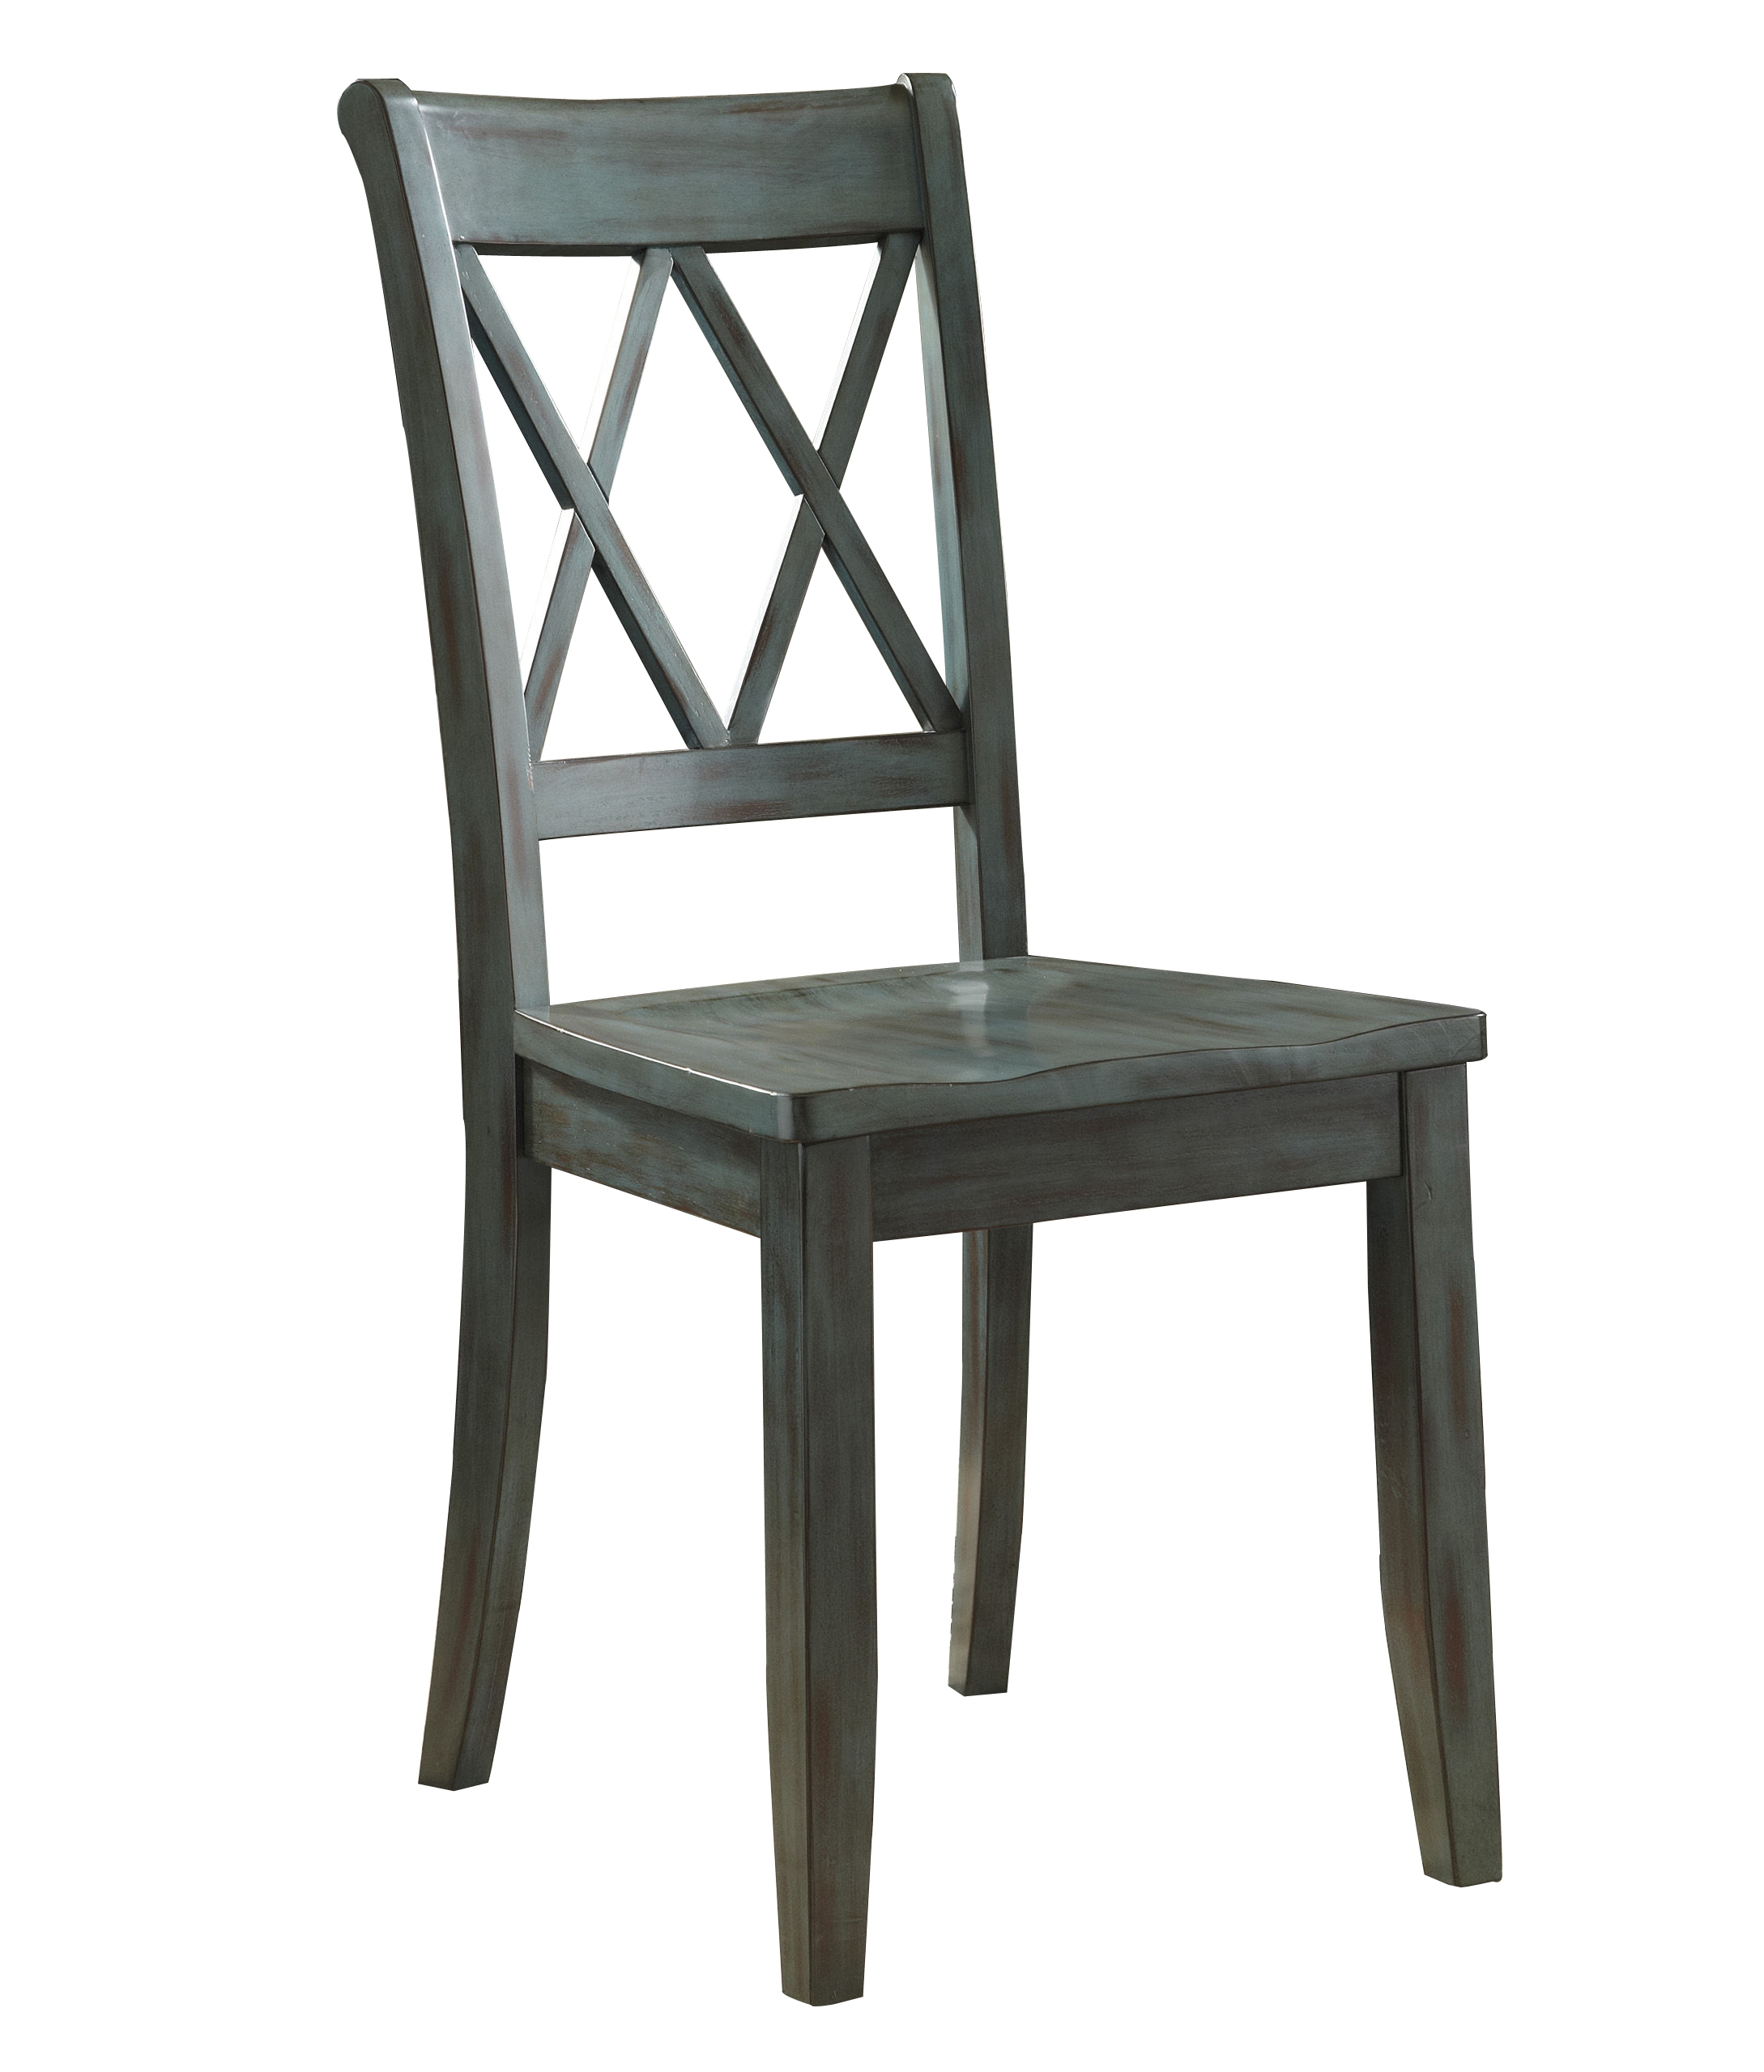 Incredible 2 Ashley Furniture Mestler Dining Side Chairs Home Interior And Landscaping Dextoversignezvosmurscom